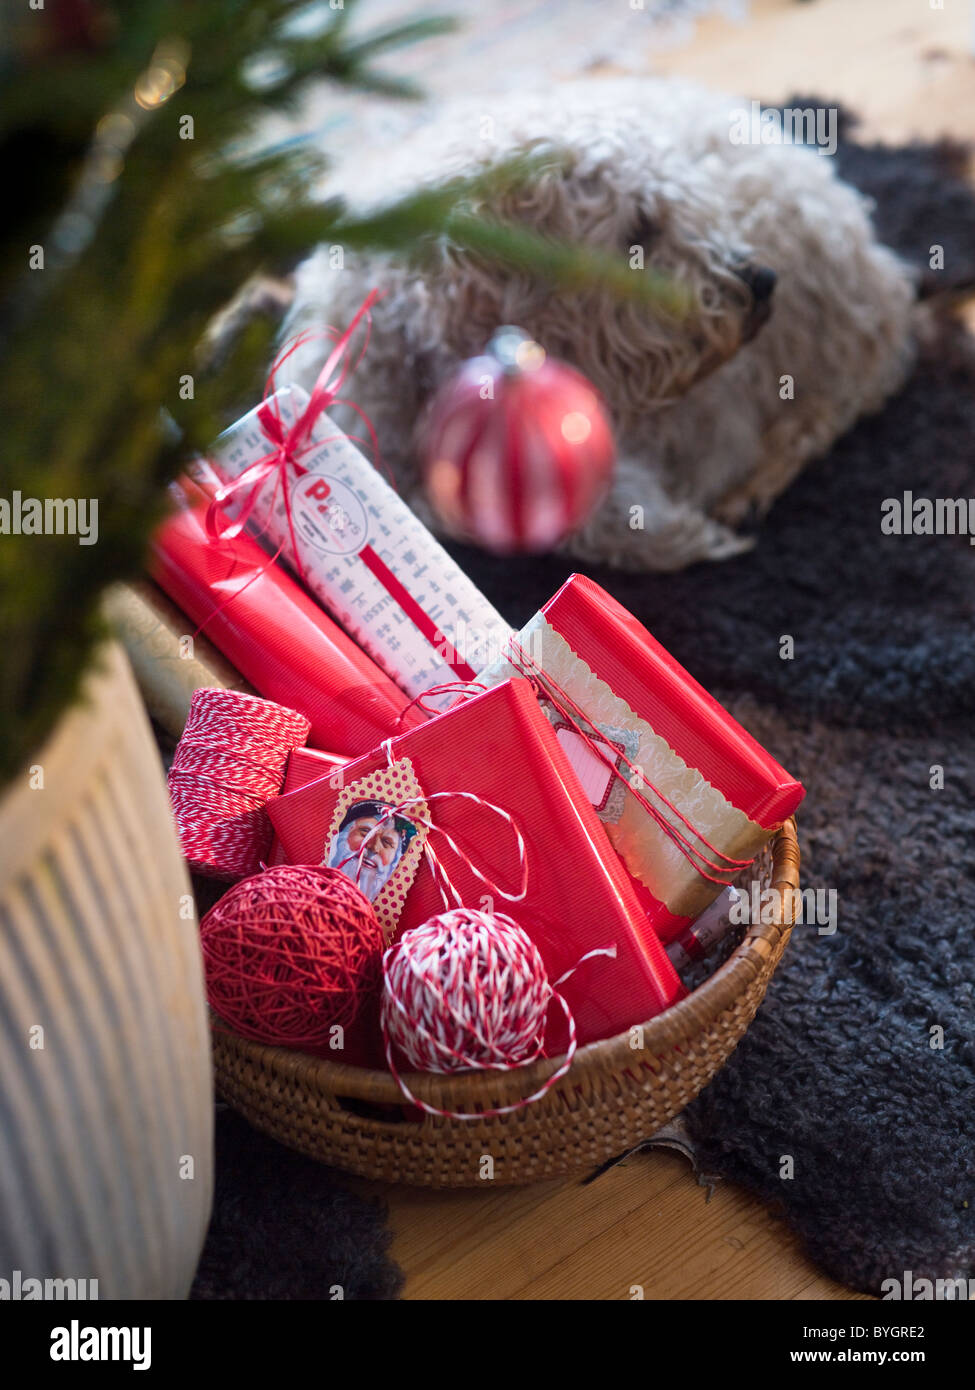 Christmas presents in basket with dog lying on background - Stock Image